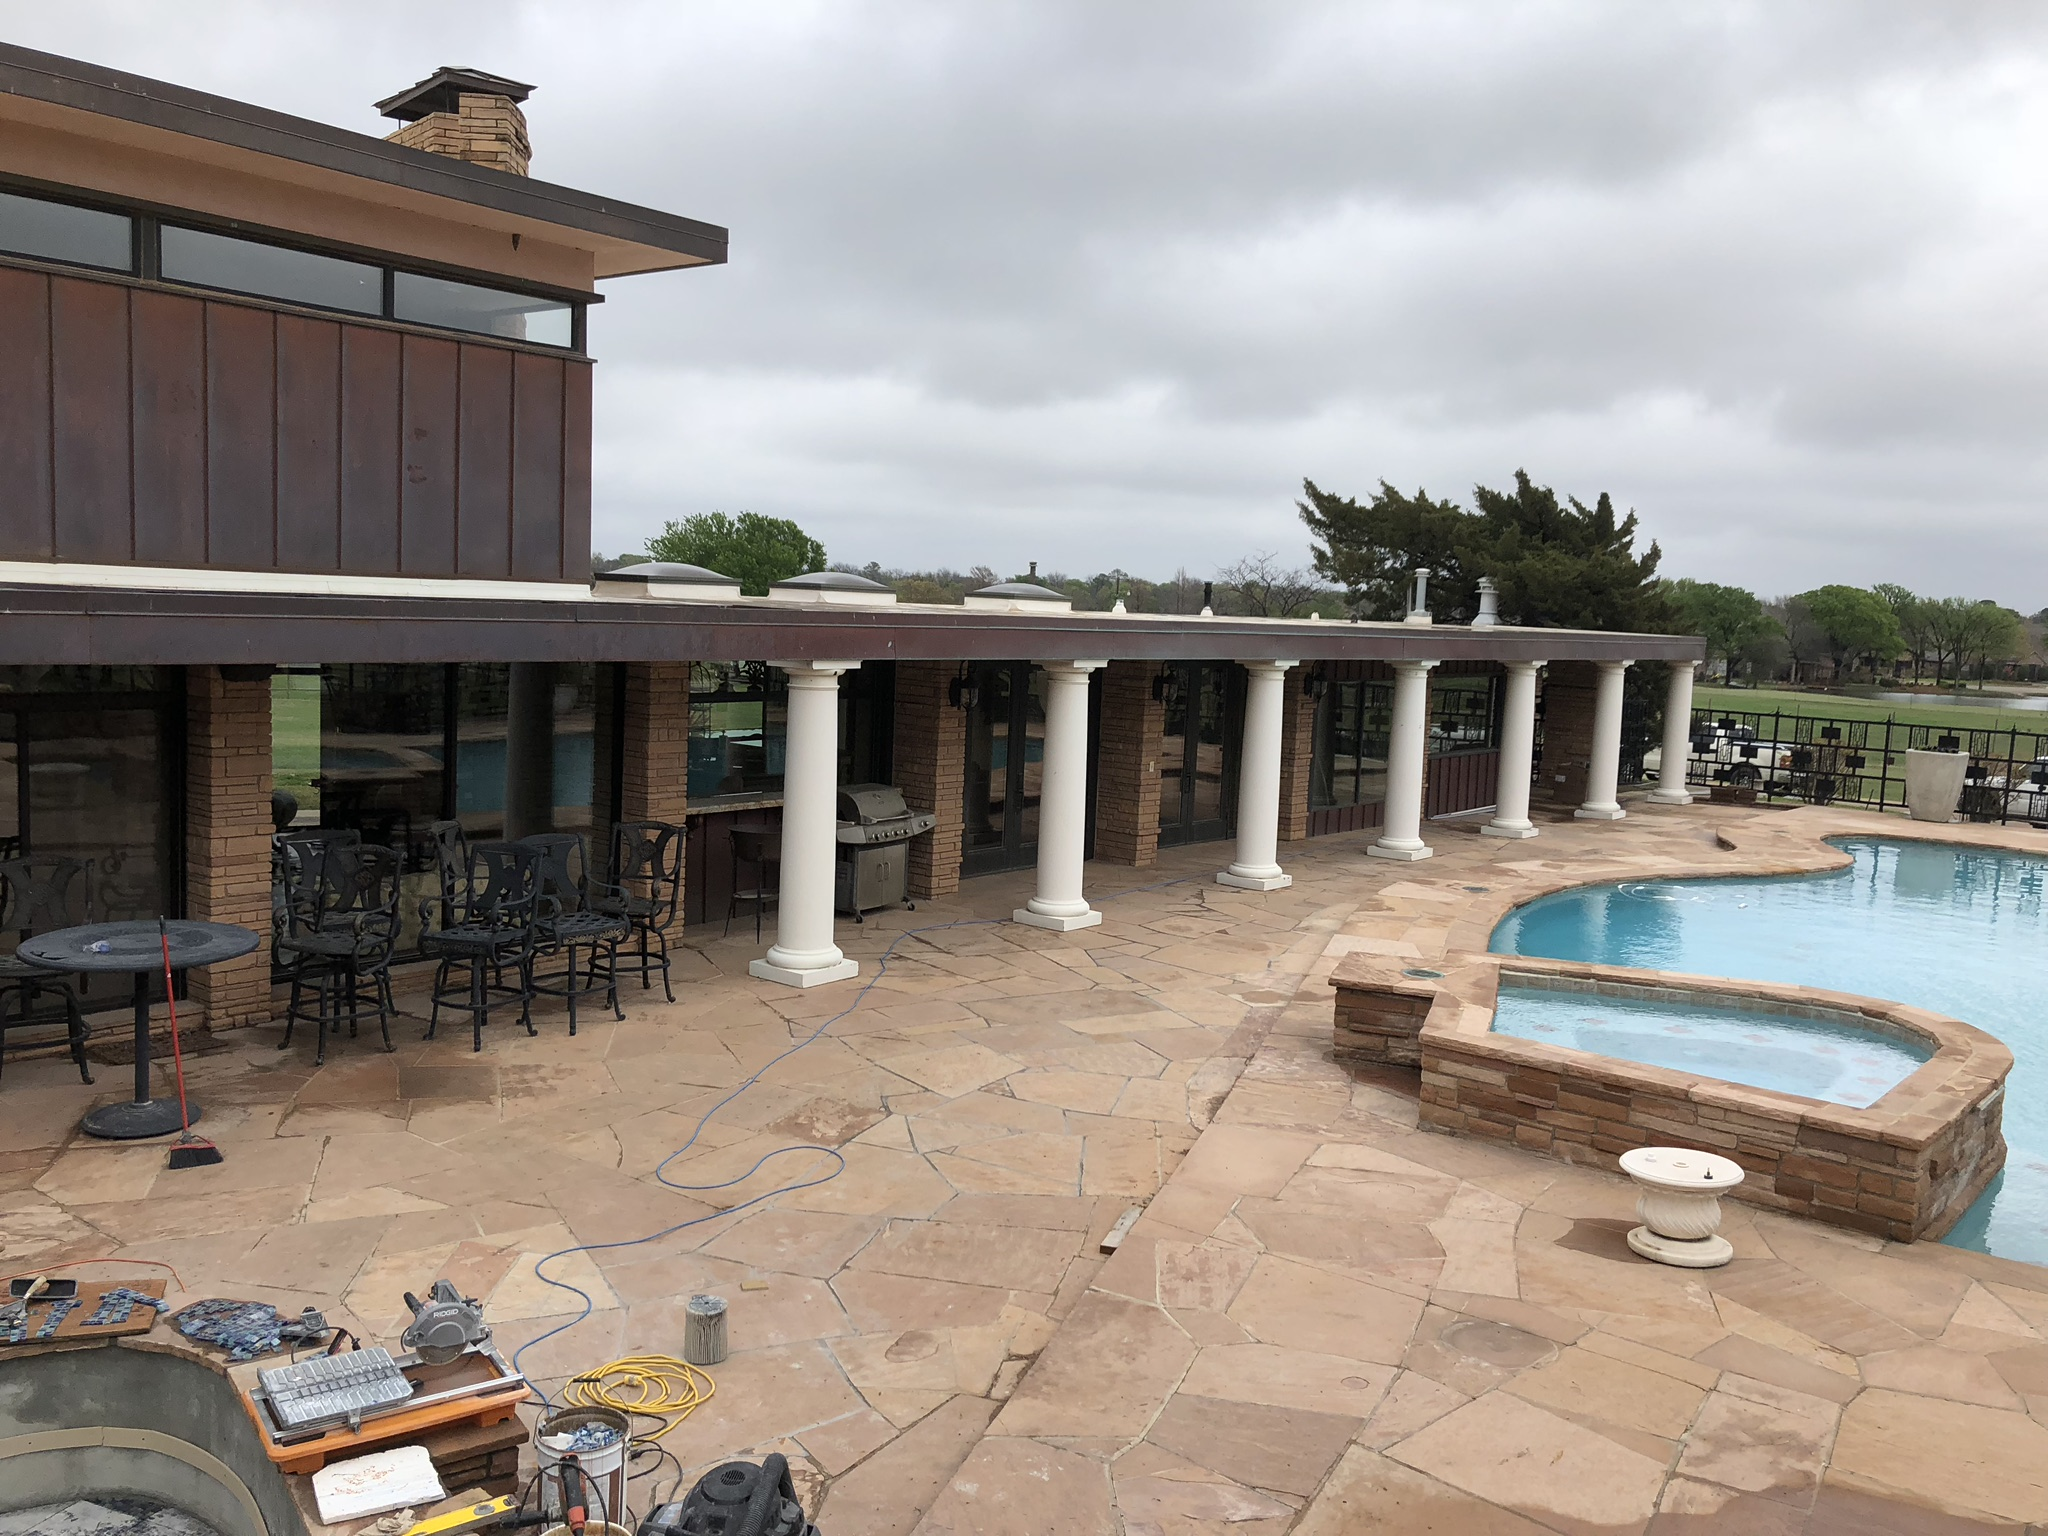 This renovation job required us to remove large portions of decking to run new lines of plumbing. Our equipment was located in a storage room, on the right side of this home. This was approximately a 100' run from the equipment to the elevated water fountains that we installed.